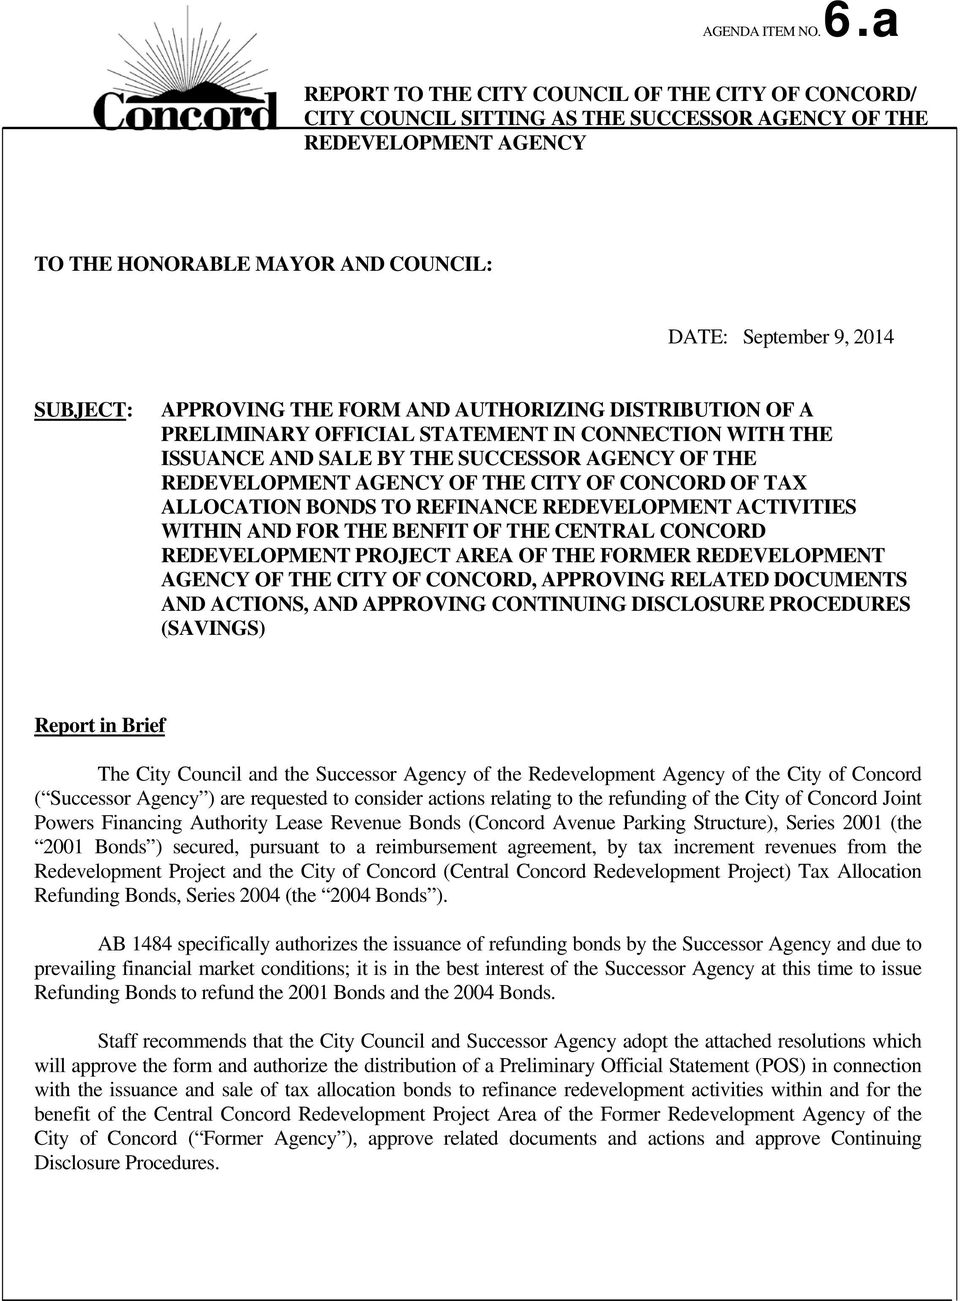 THE FORM AND AUTHORIZING DISTRIBUTION OF A PRELIMINARY OFFICIAL STATEMENT IN CONNECTION WITH THE ISSUANCE AND SALE BY THE SUCCESSOR AGENCY OF THE REDEVELOPMENT AGENCY OF THE CITY OF CONCORD OF TAX